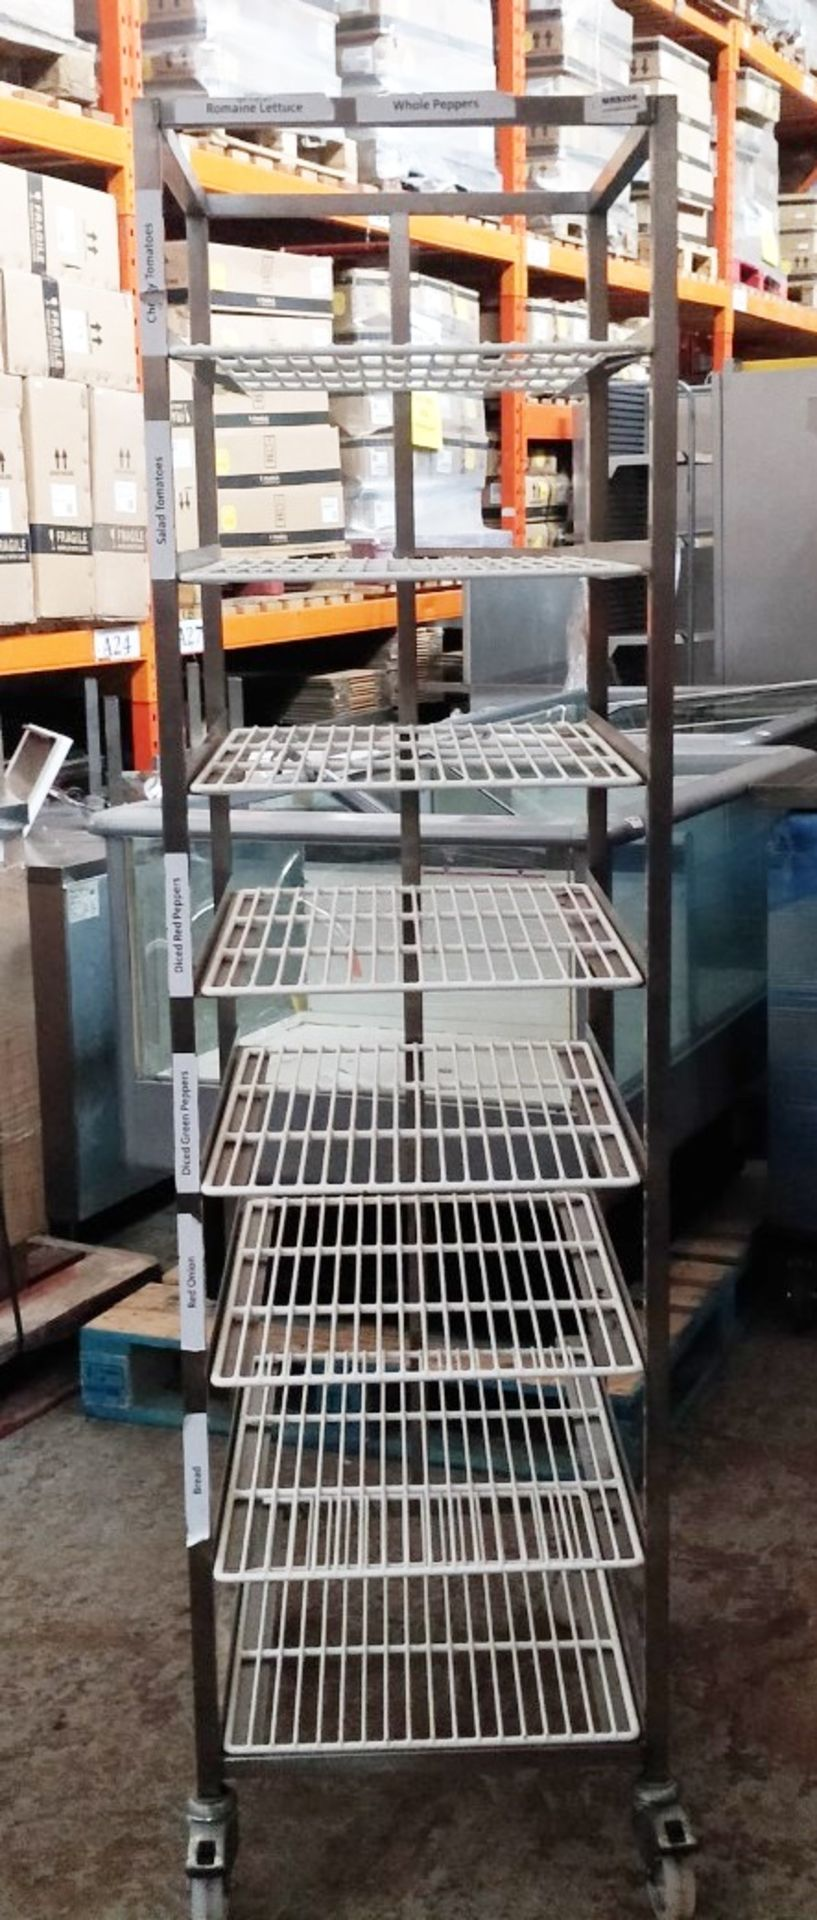 1 x Commercial Kitchen Upright Mobile Tray Rack With Eight Wire Racks - Size to Follow - Recently - Image 2 of 3